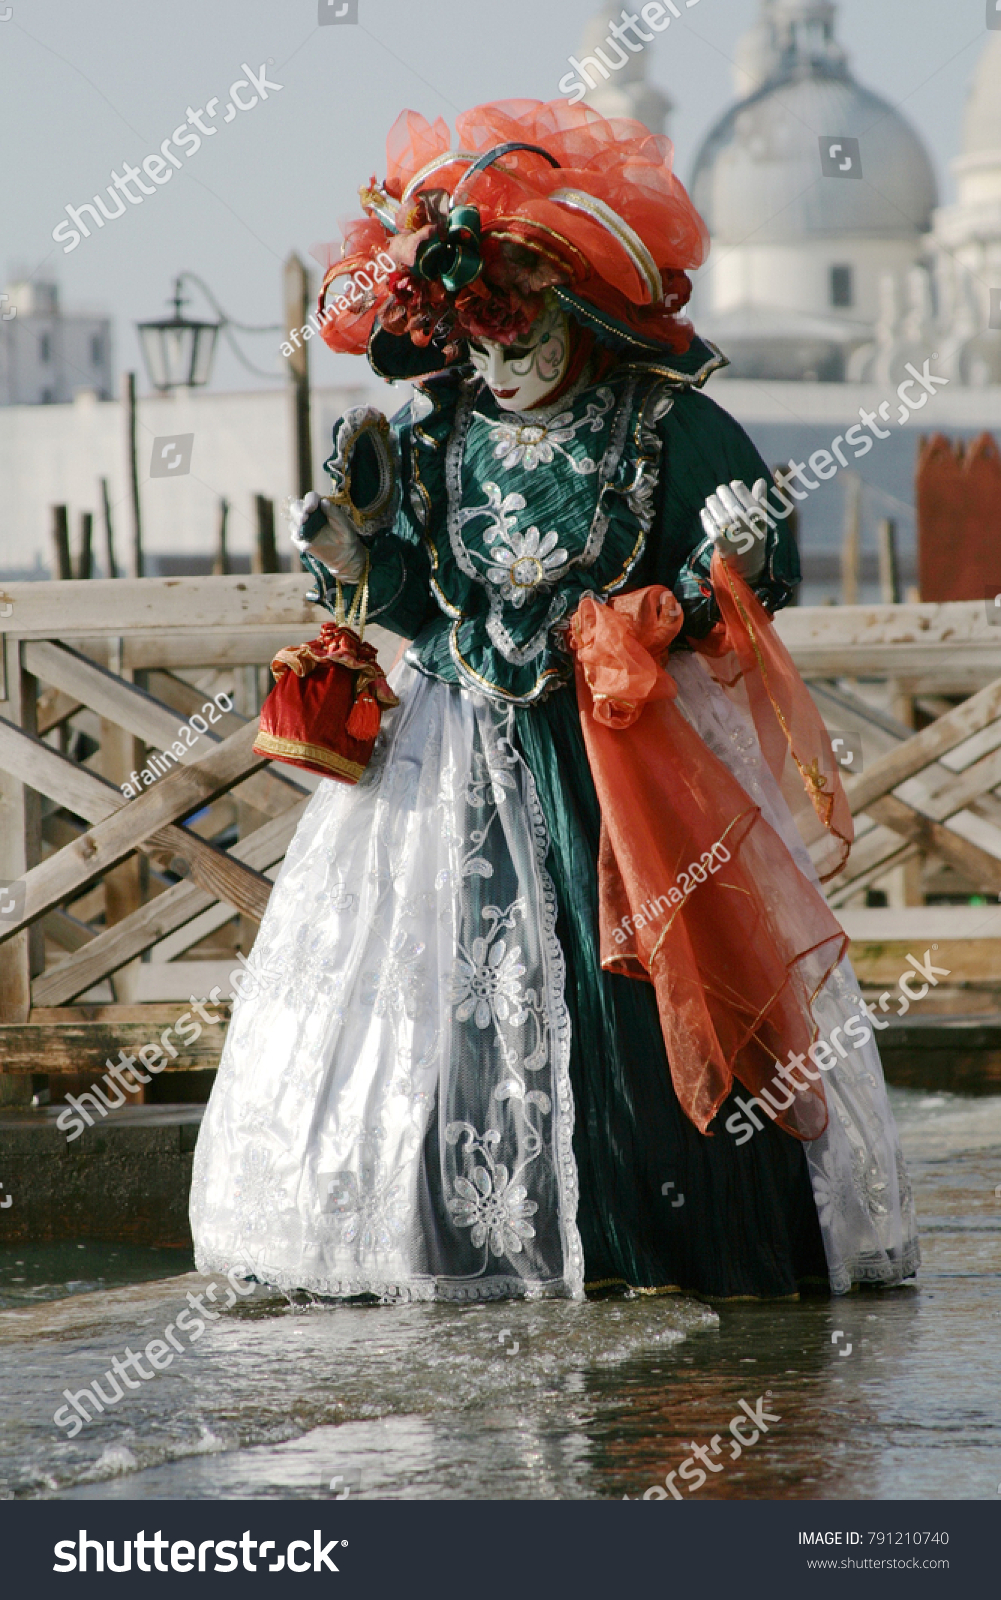 Woman In Beautiful Red Green And White Masquerade Dress Mask At The Venice Carnival Italy